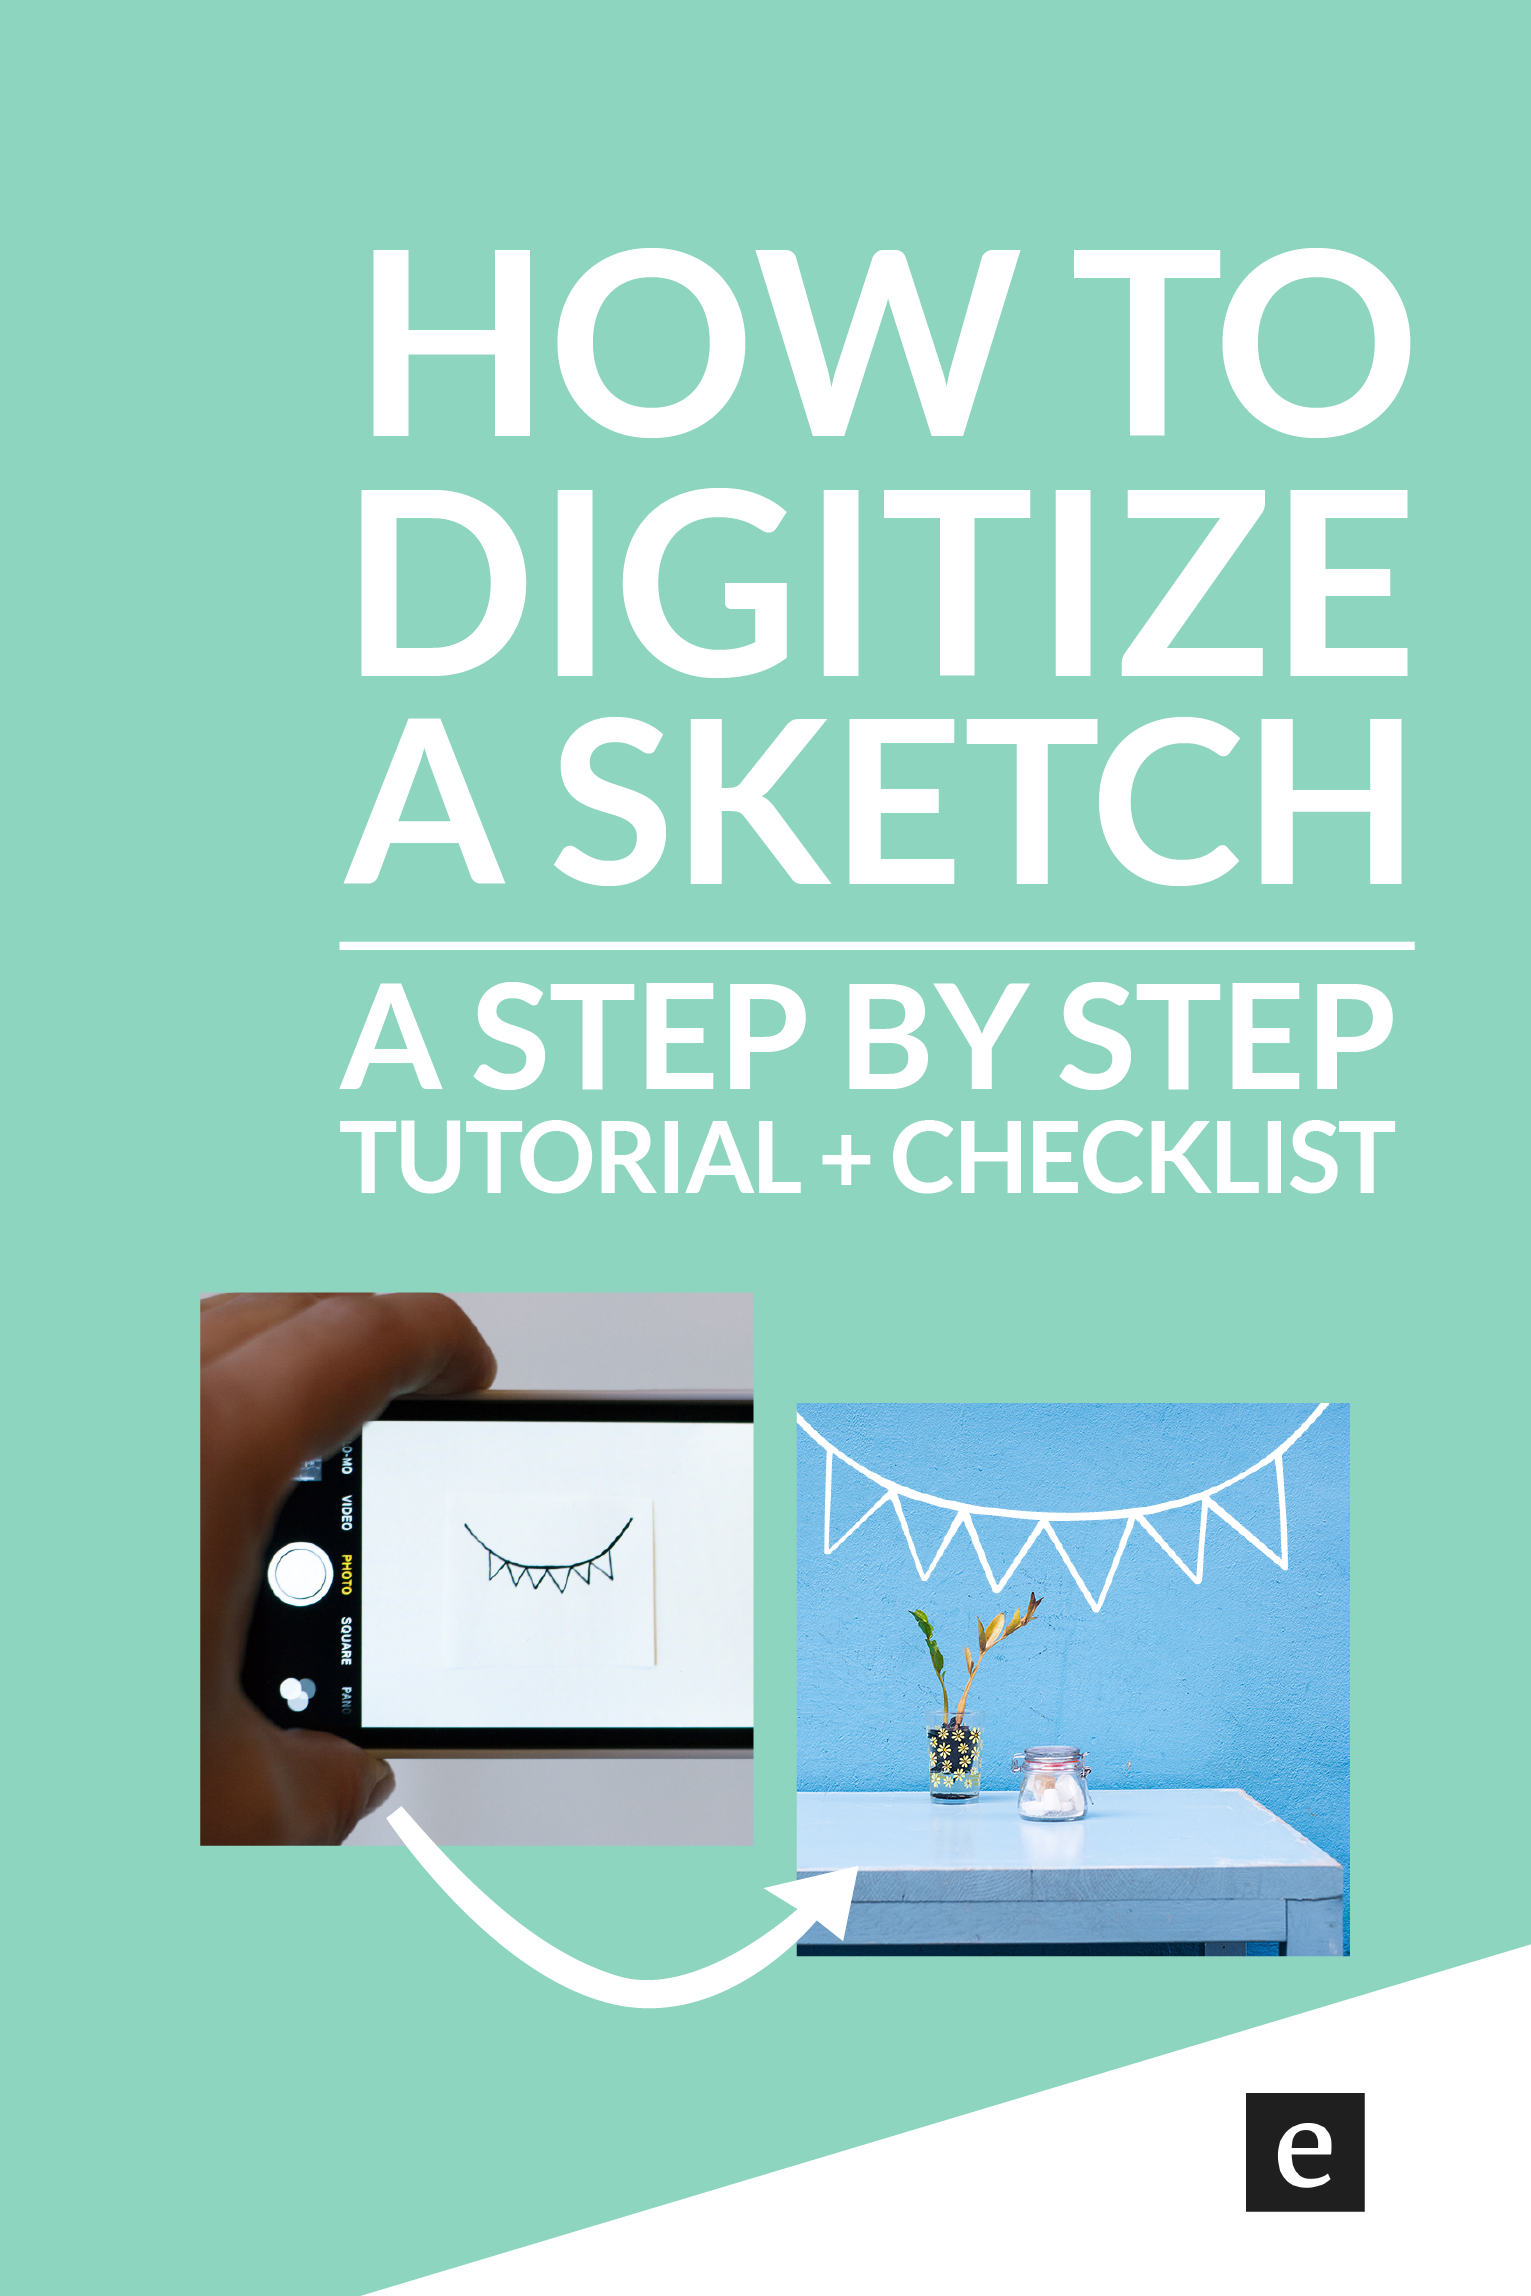 How To Turn A Sketch Into Digital Art A Free Checklist Want To Use A Drawing To Create Digital Learning Graphic Design Graphic Design Tutorials Tutorial